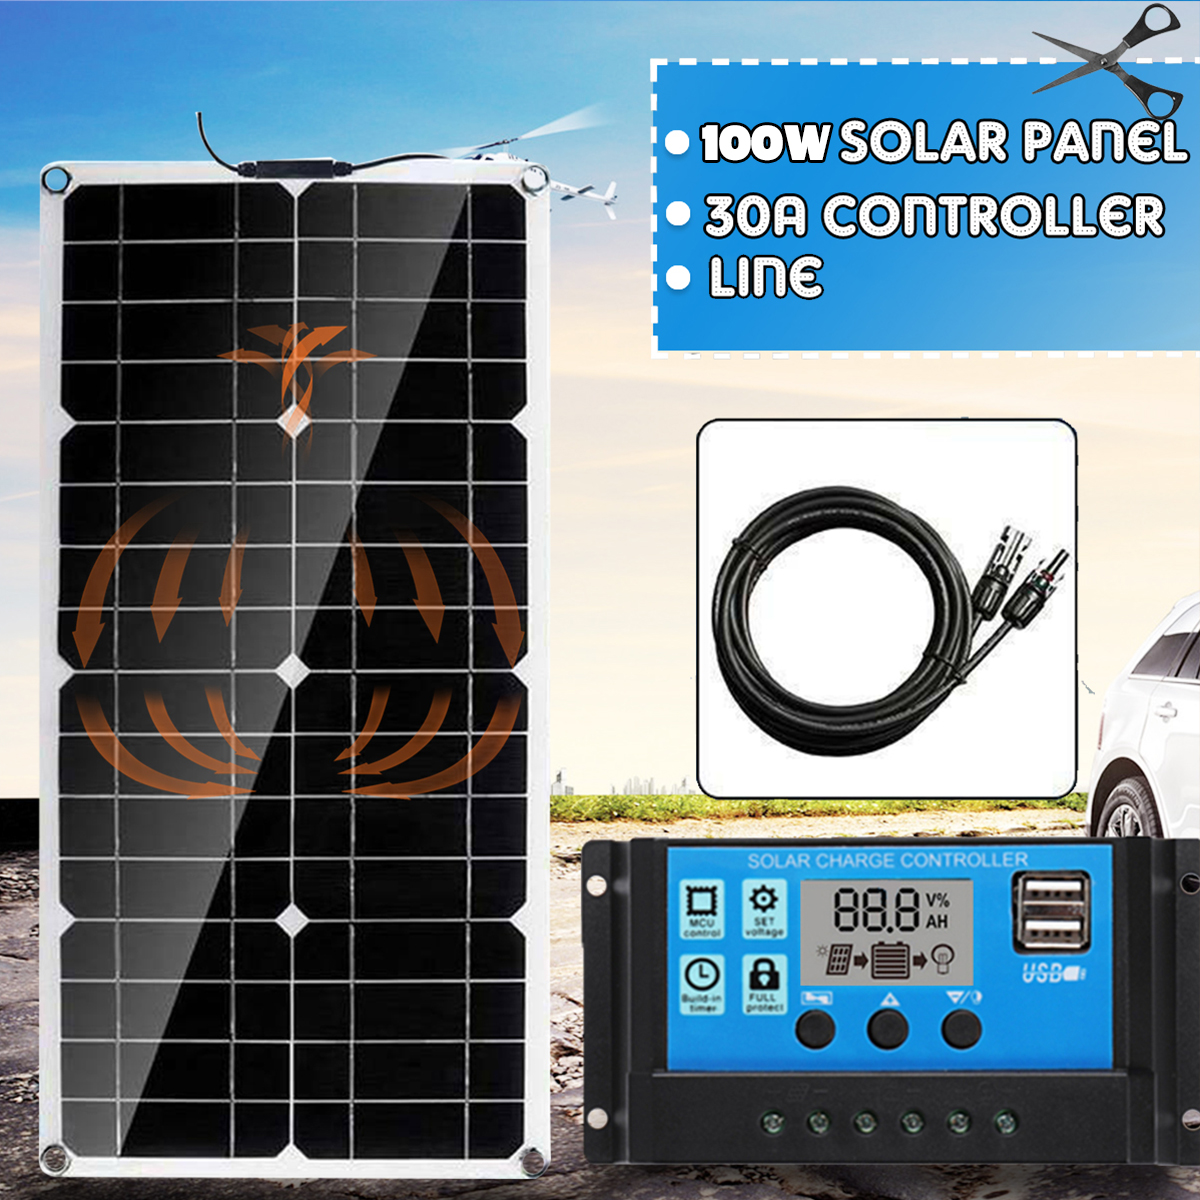 100W Solar Panel 18V Solar Power Panel +Line + 30A Solar Charge Controller For Outdoor Camping Car Boat Solar Battery